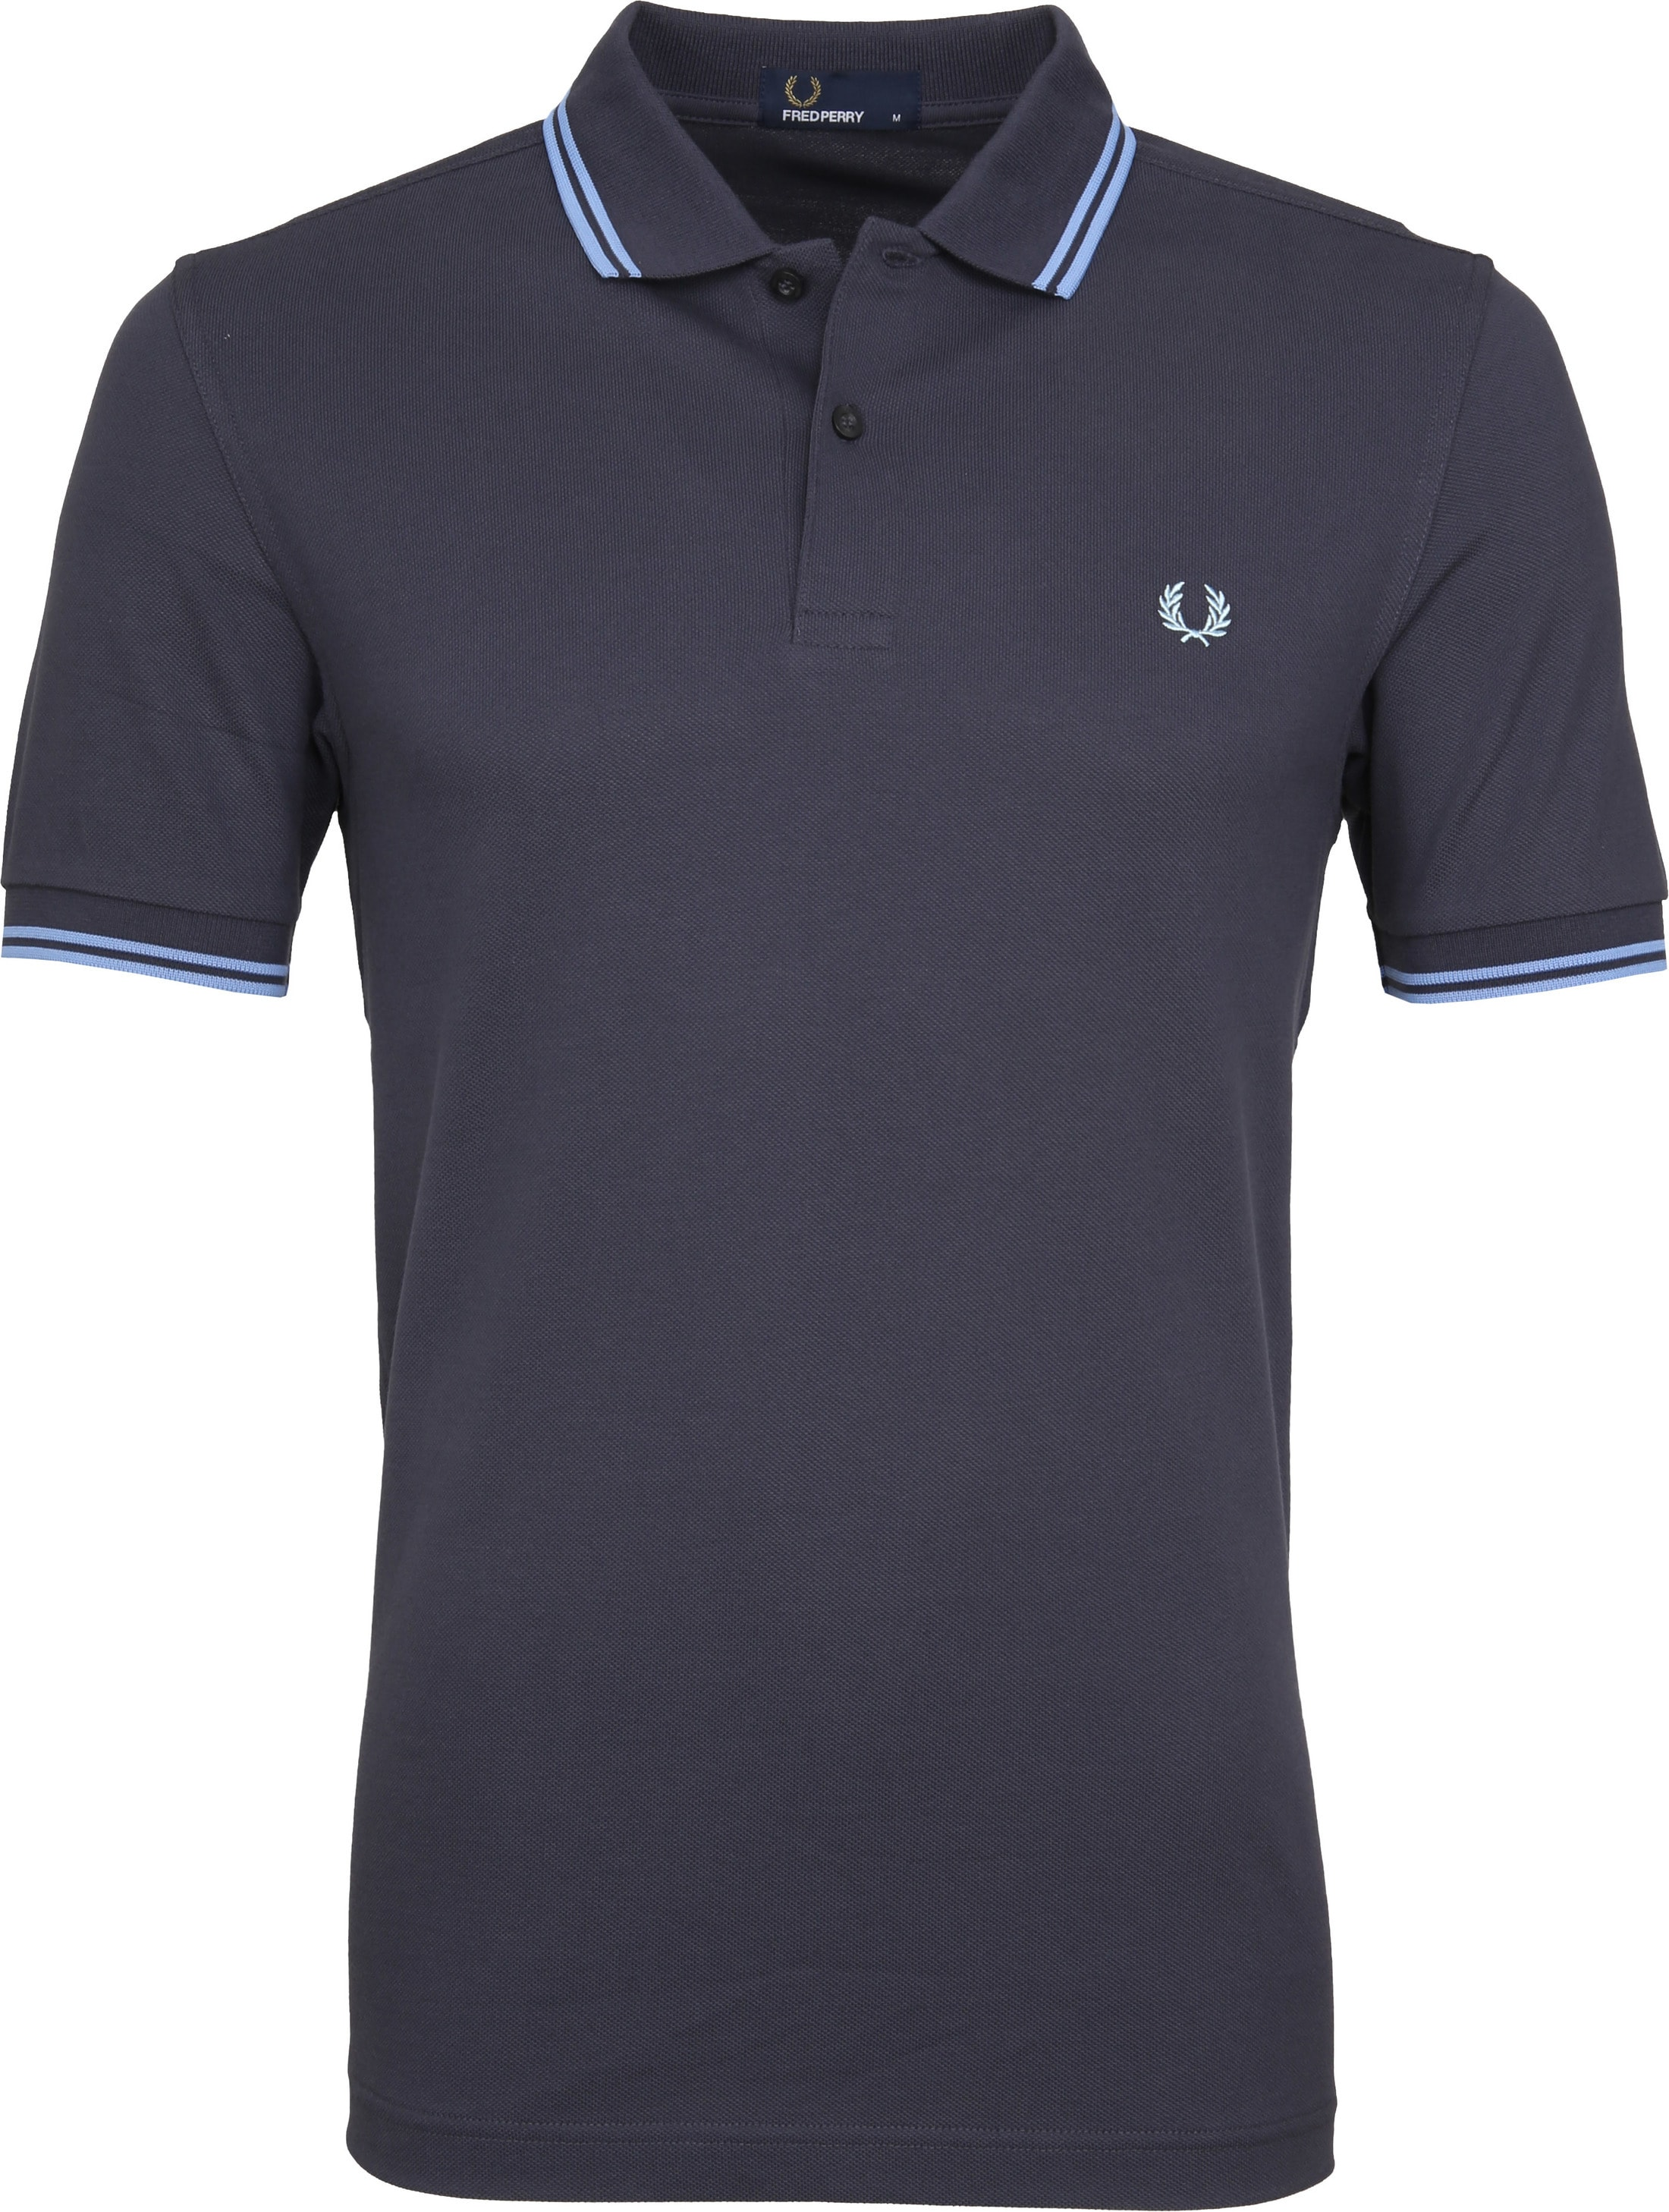 Fred Perry Polo Grijs Blauw C12 foto 0